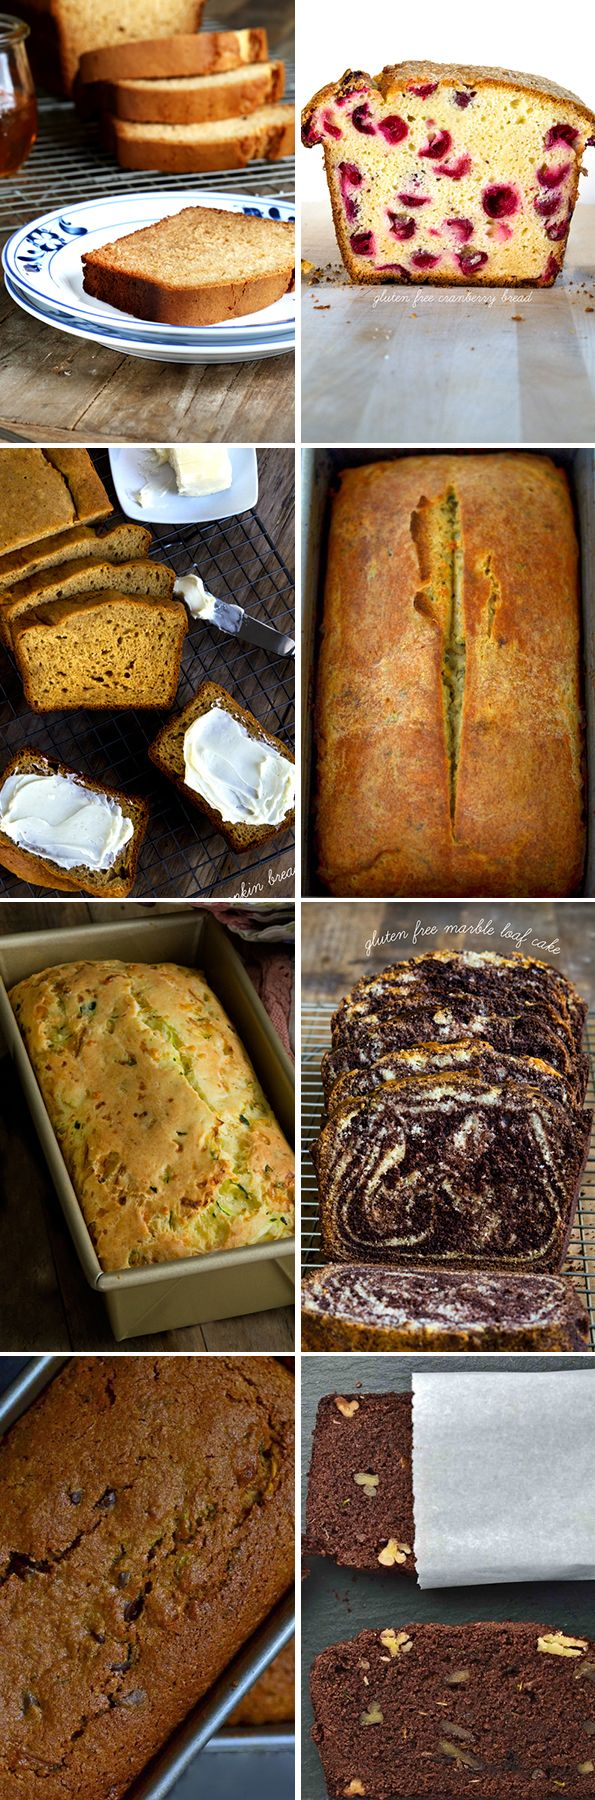 Gluten Free Quick Bread Recipes - Gluten-Free on a Shoestring